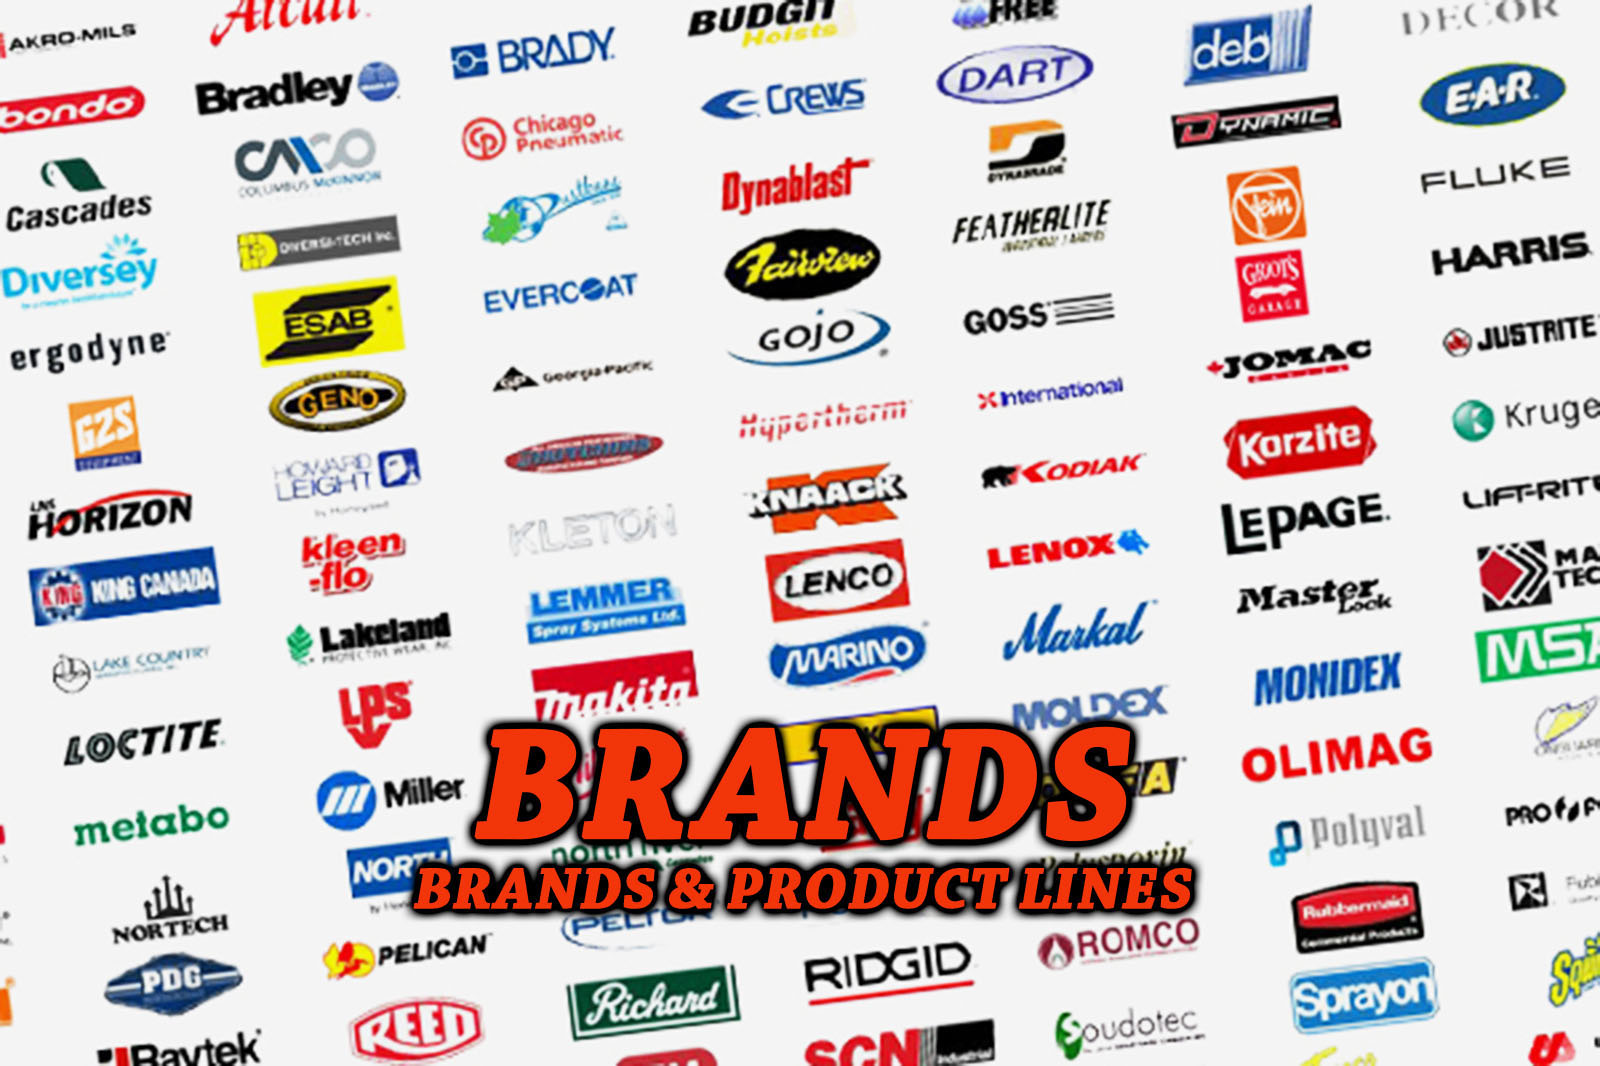 Brands and Product Lines